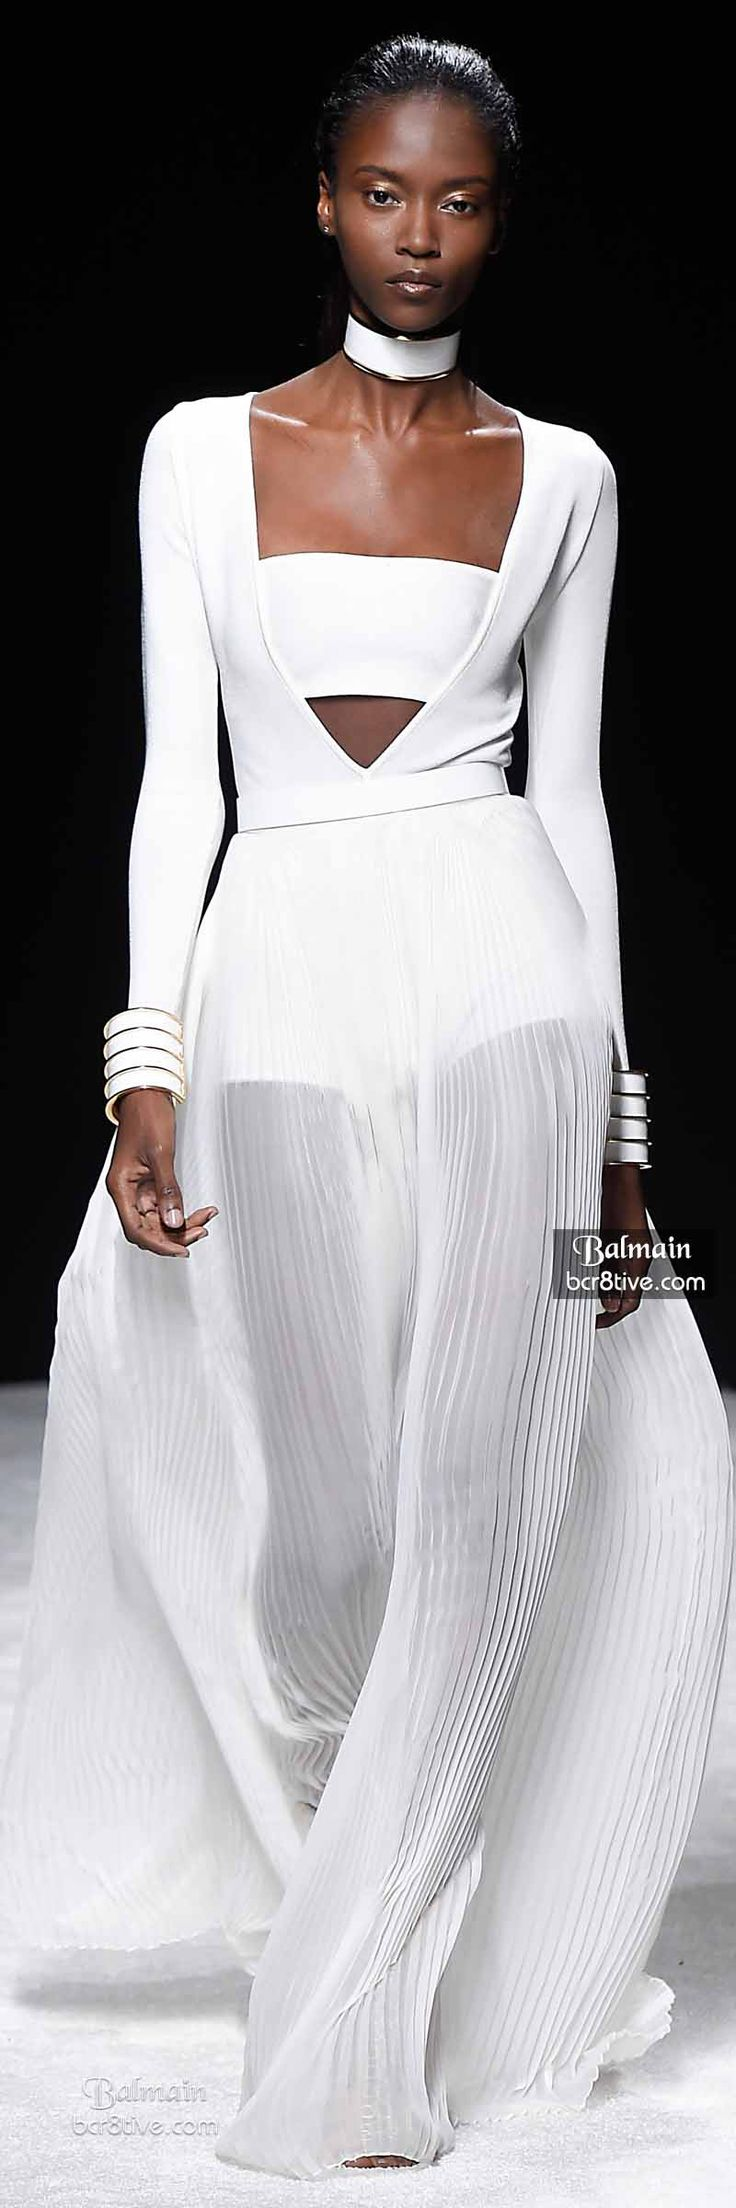 Balmain Spring 2015 RTW - White can be so dramatic. This is hot!